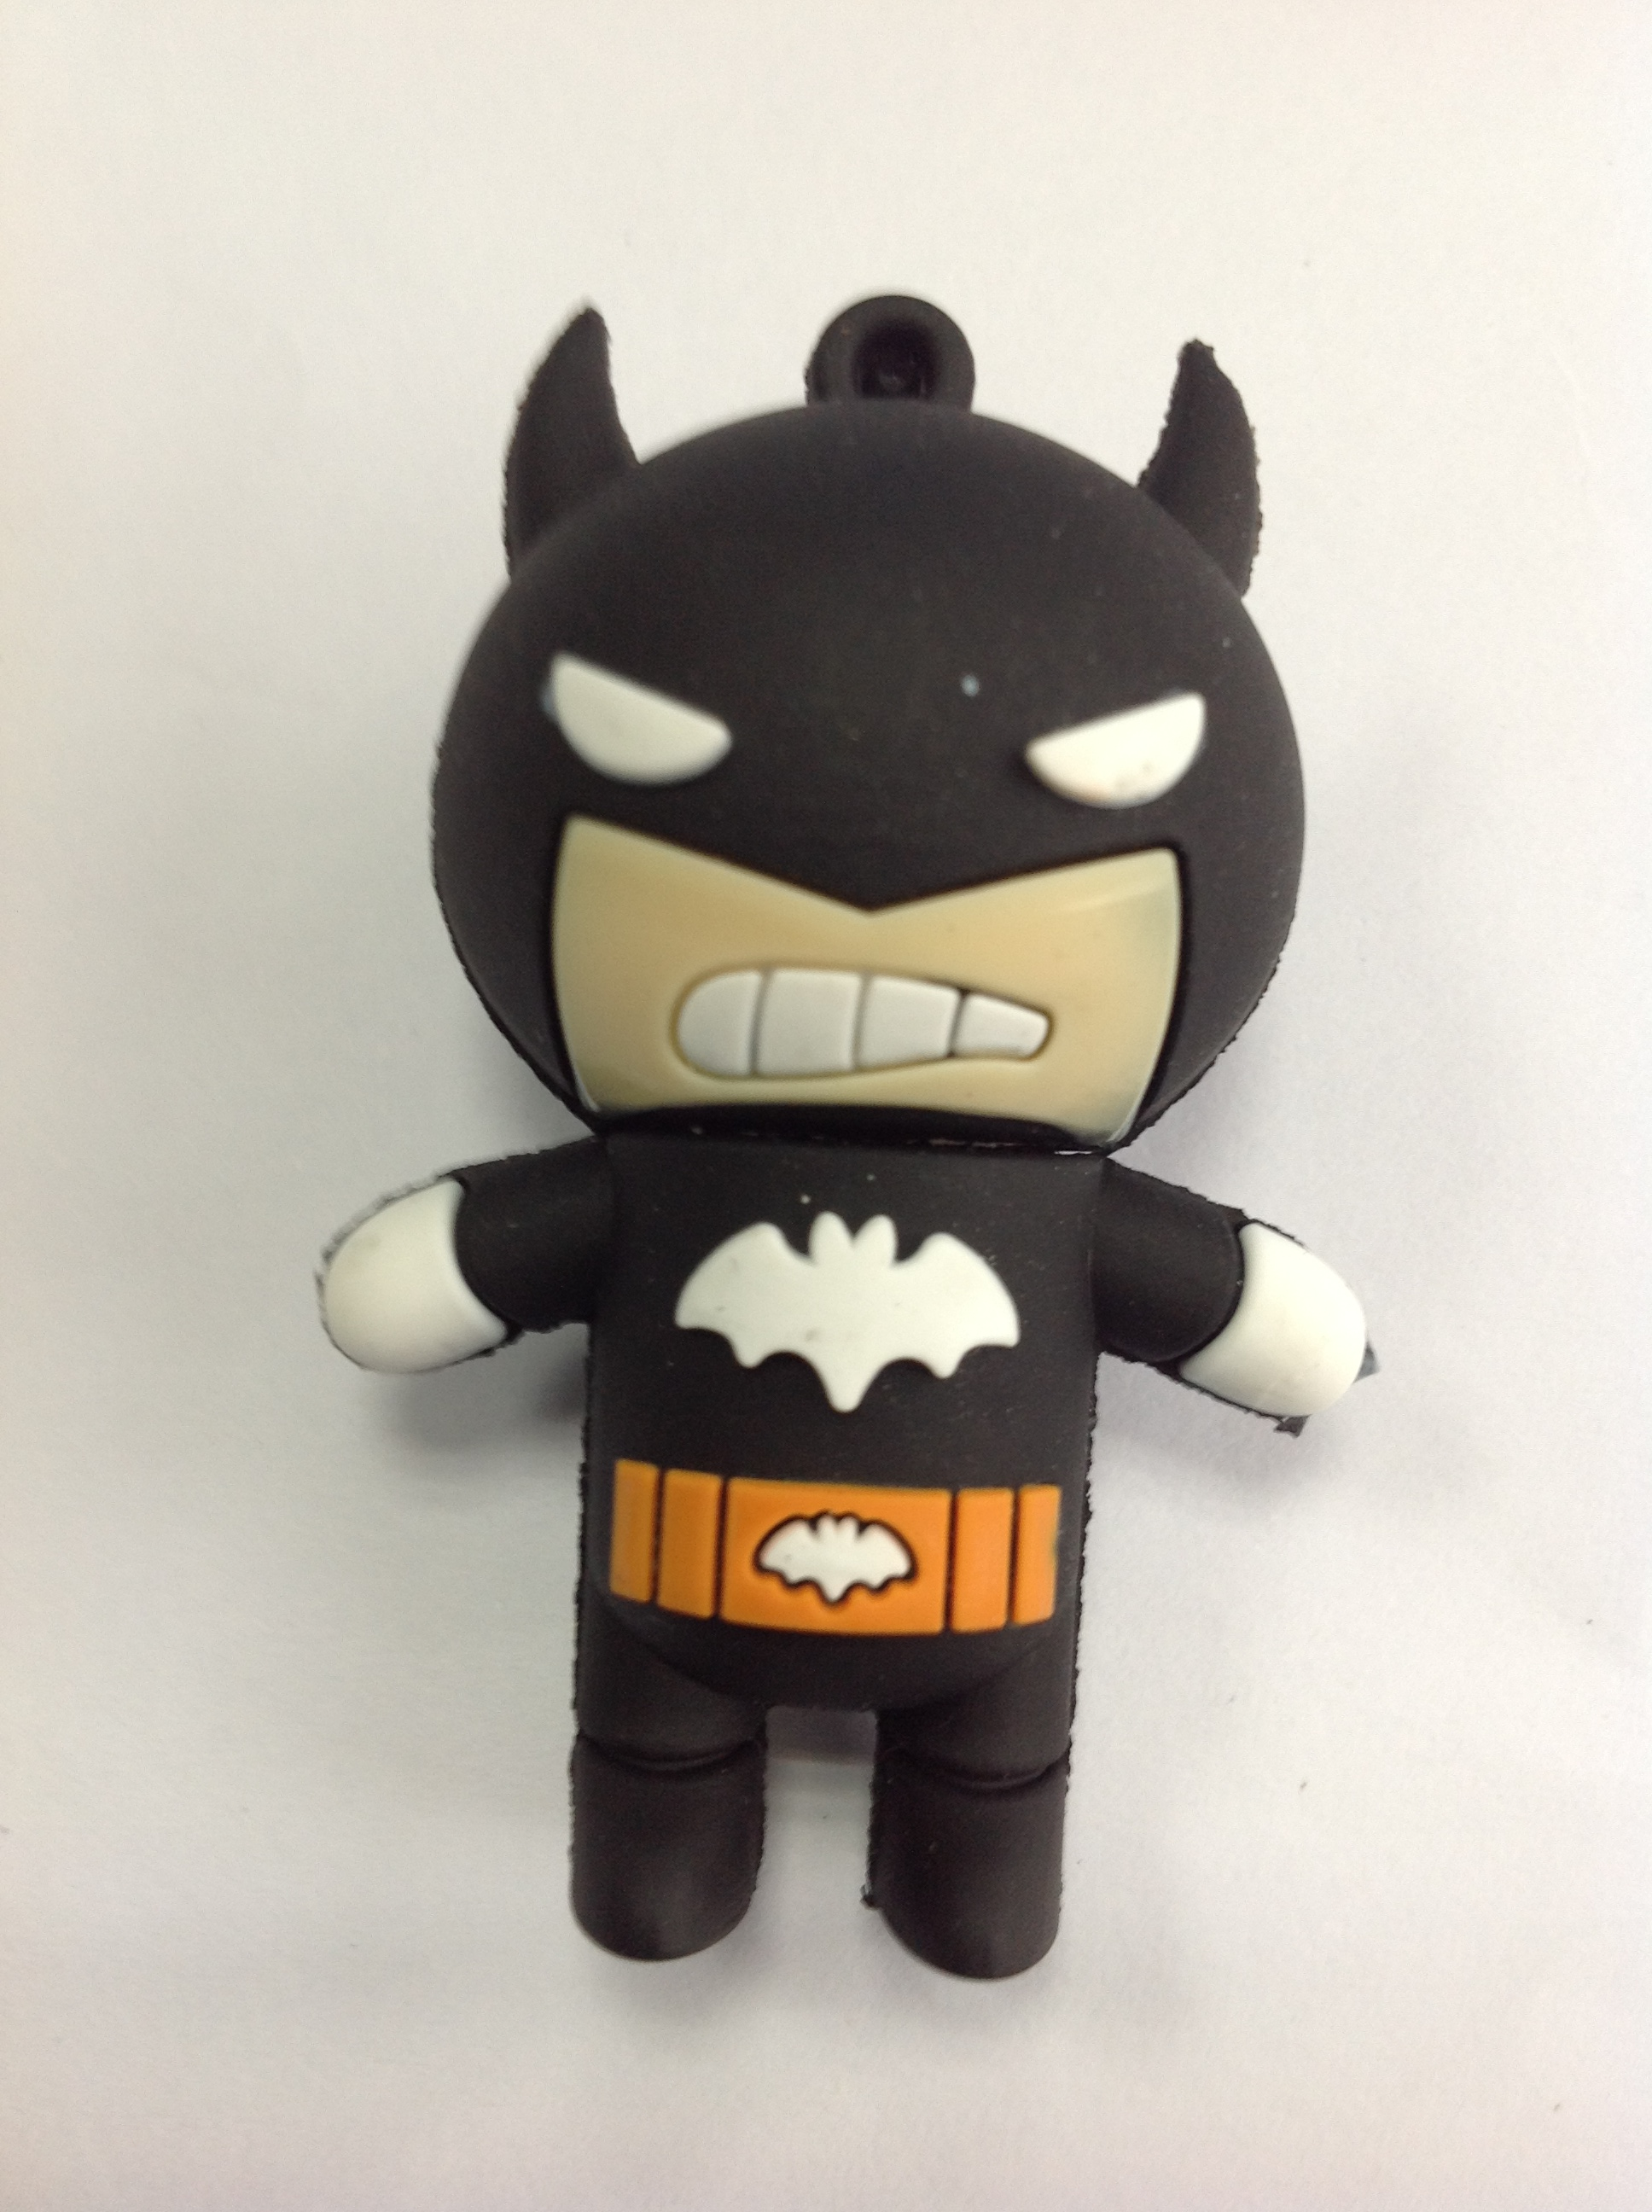 8GB Cartoon Batman USB Flash Drive